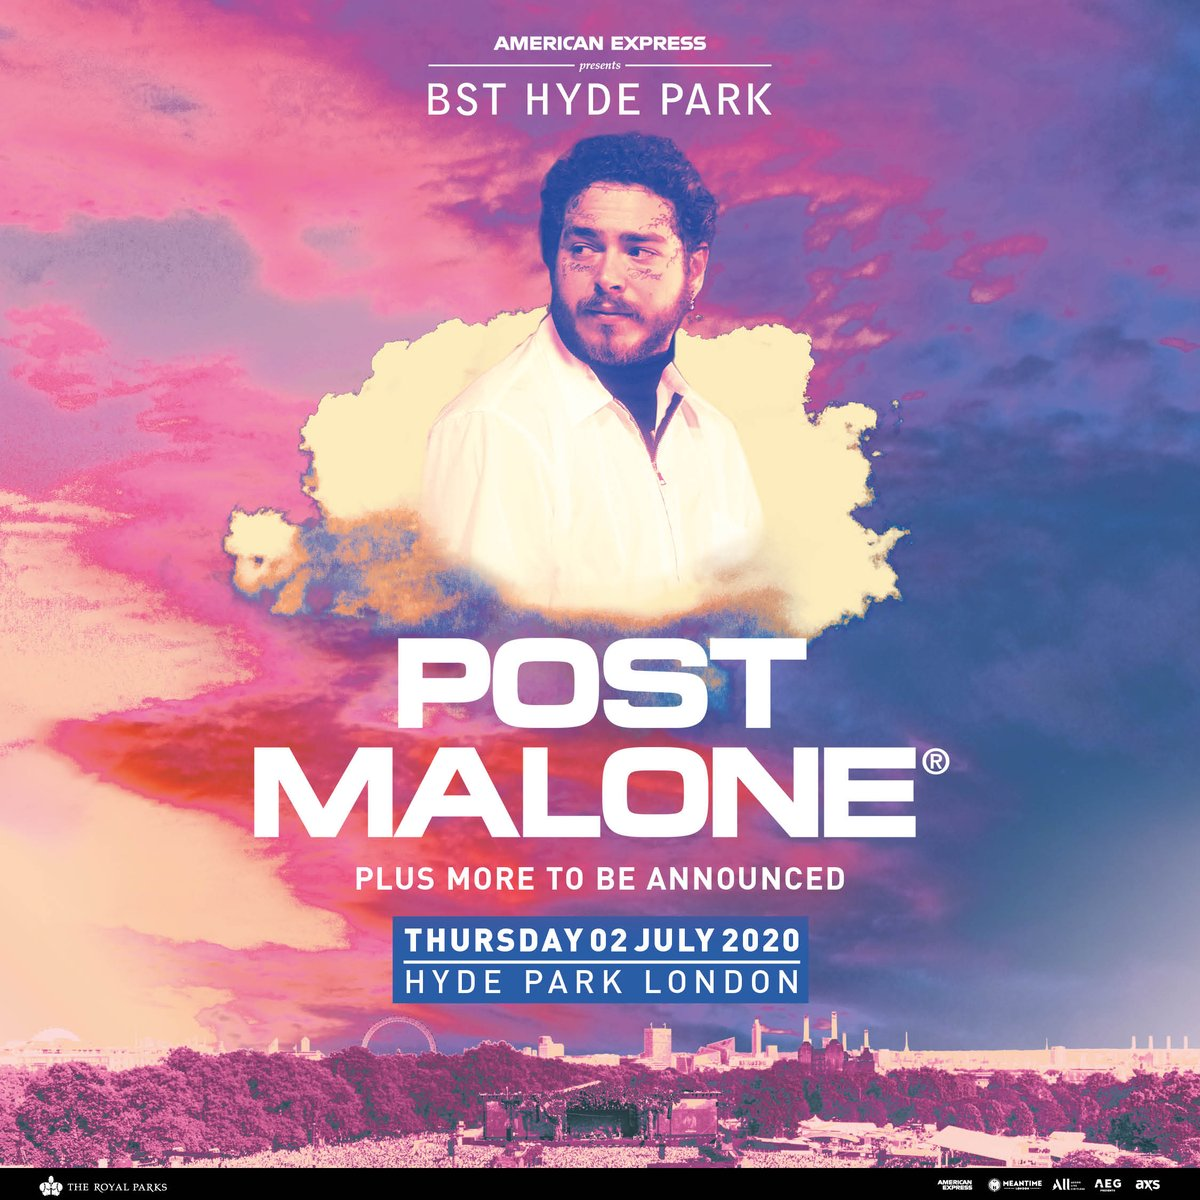 POSTY!!! @PostMalone has just been announced to perform at @BSTHydePark! 👏  Tickets go are om sale this HERE 👉 👈  #PlayKISSFM 🔈